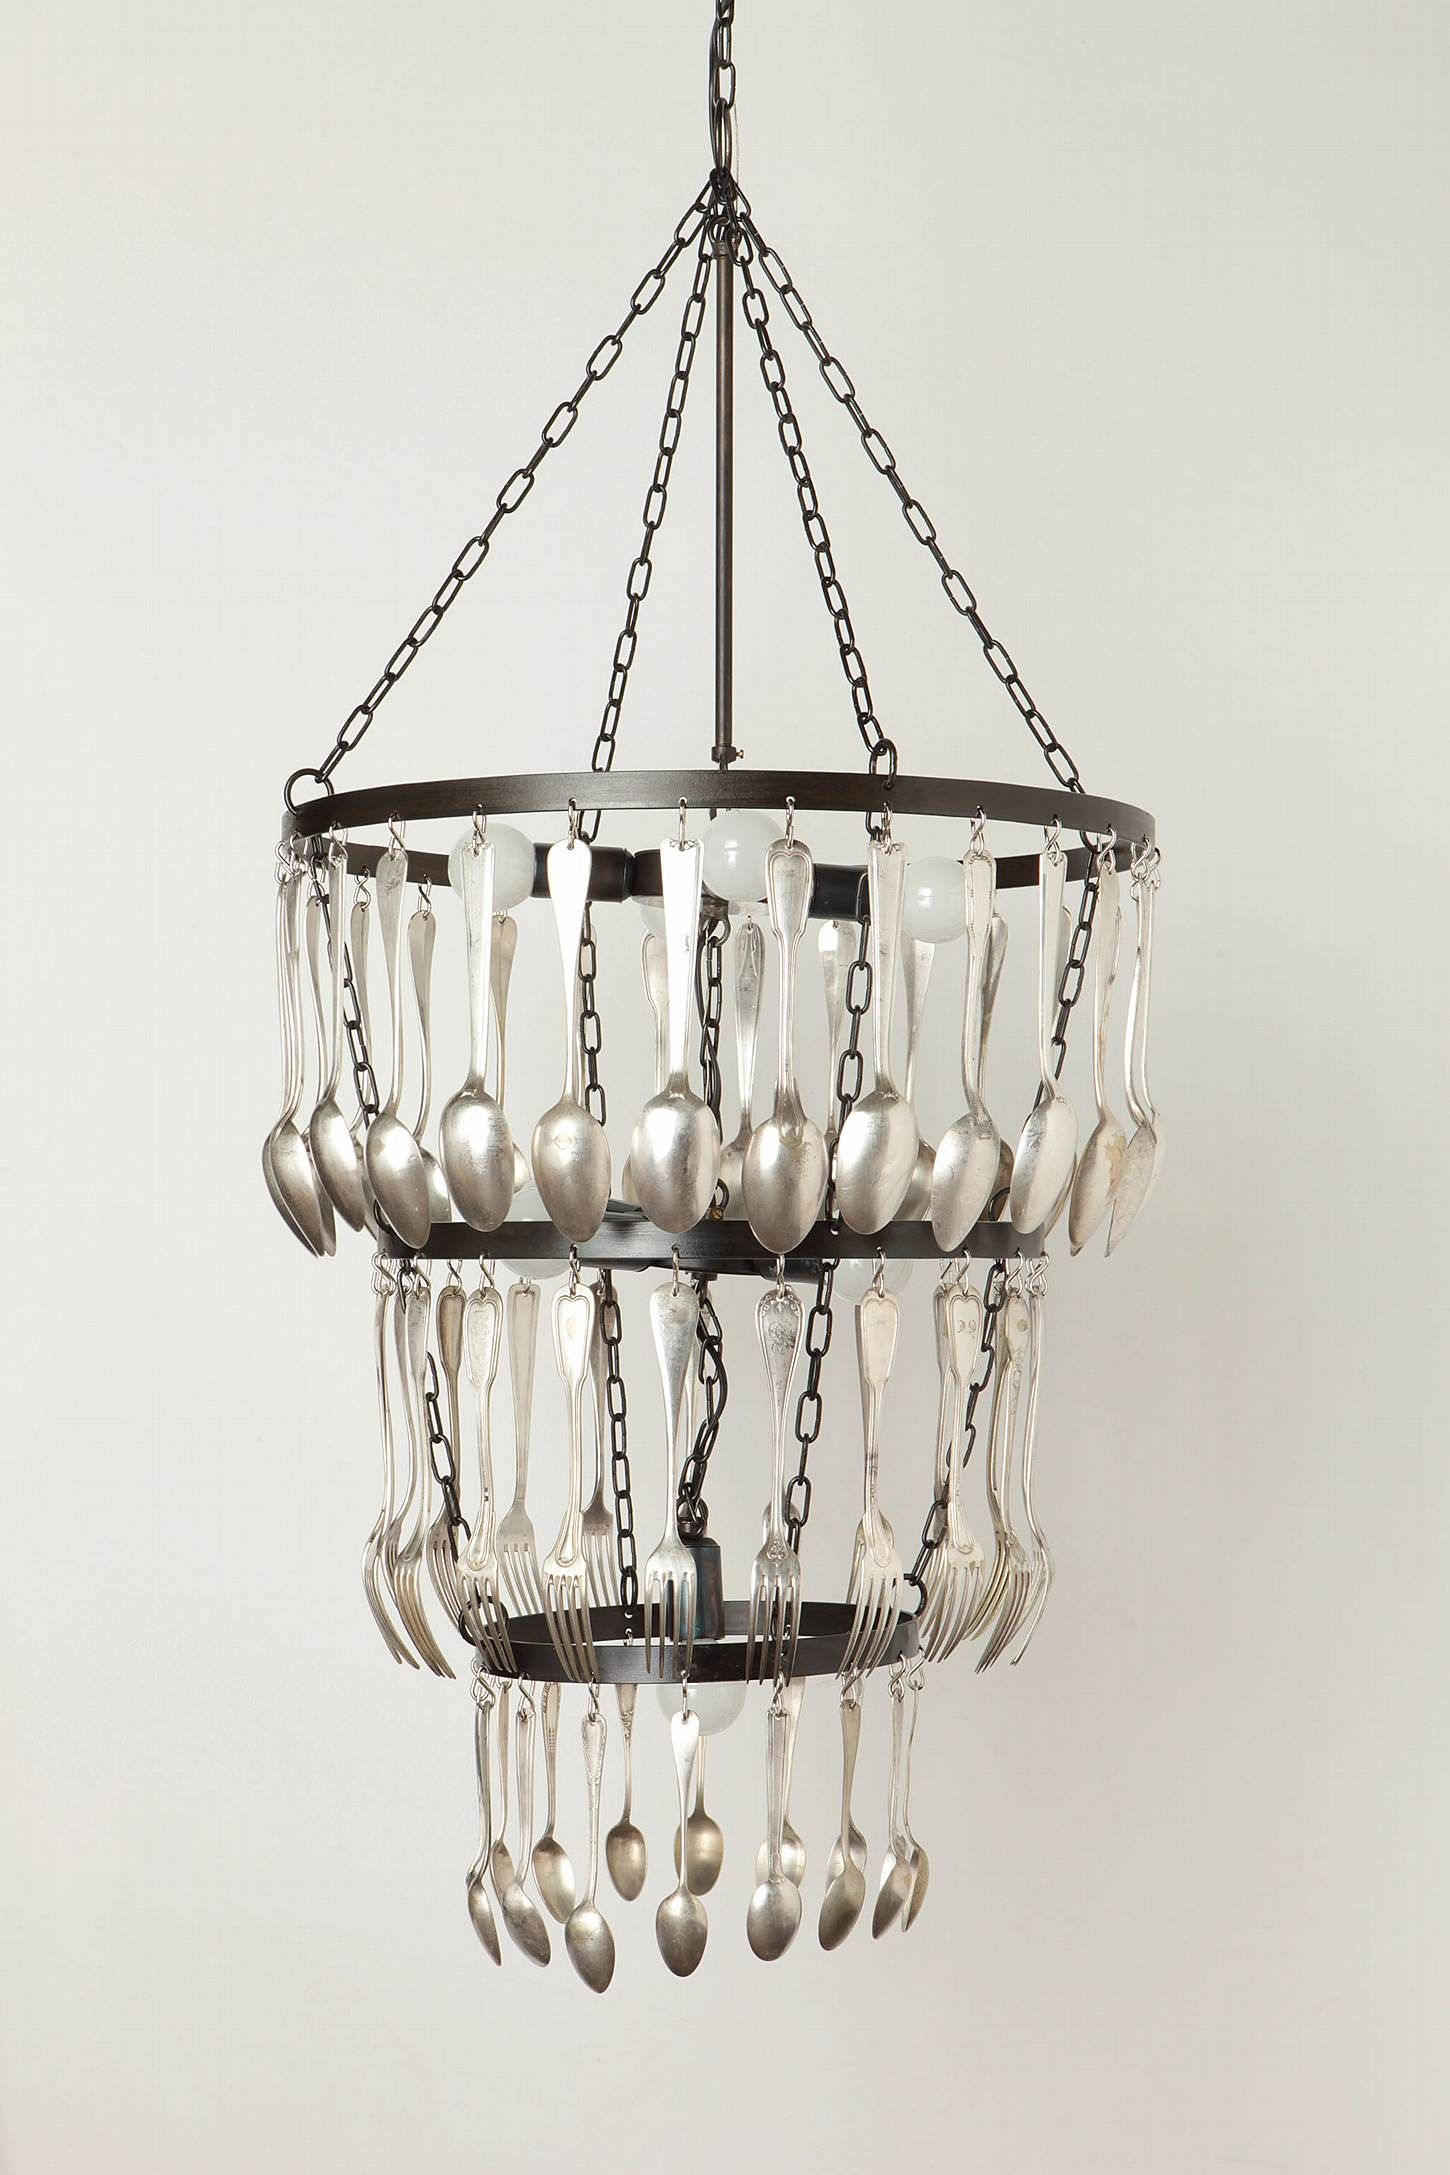 Eat Drink And Be Merry Chandelier Saw